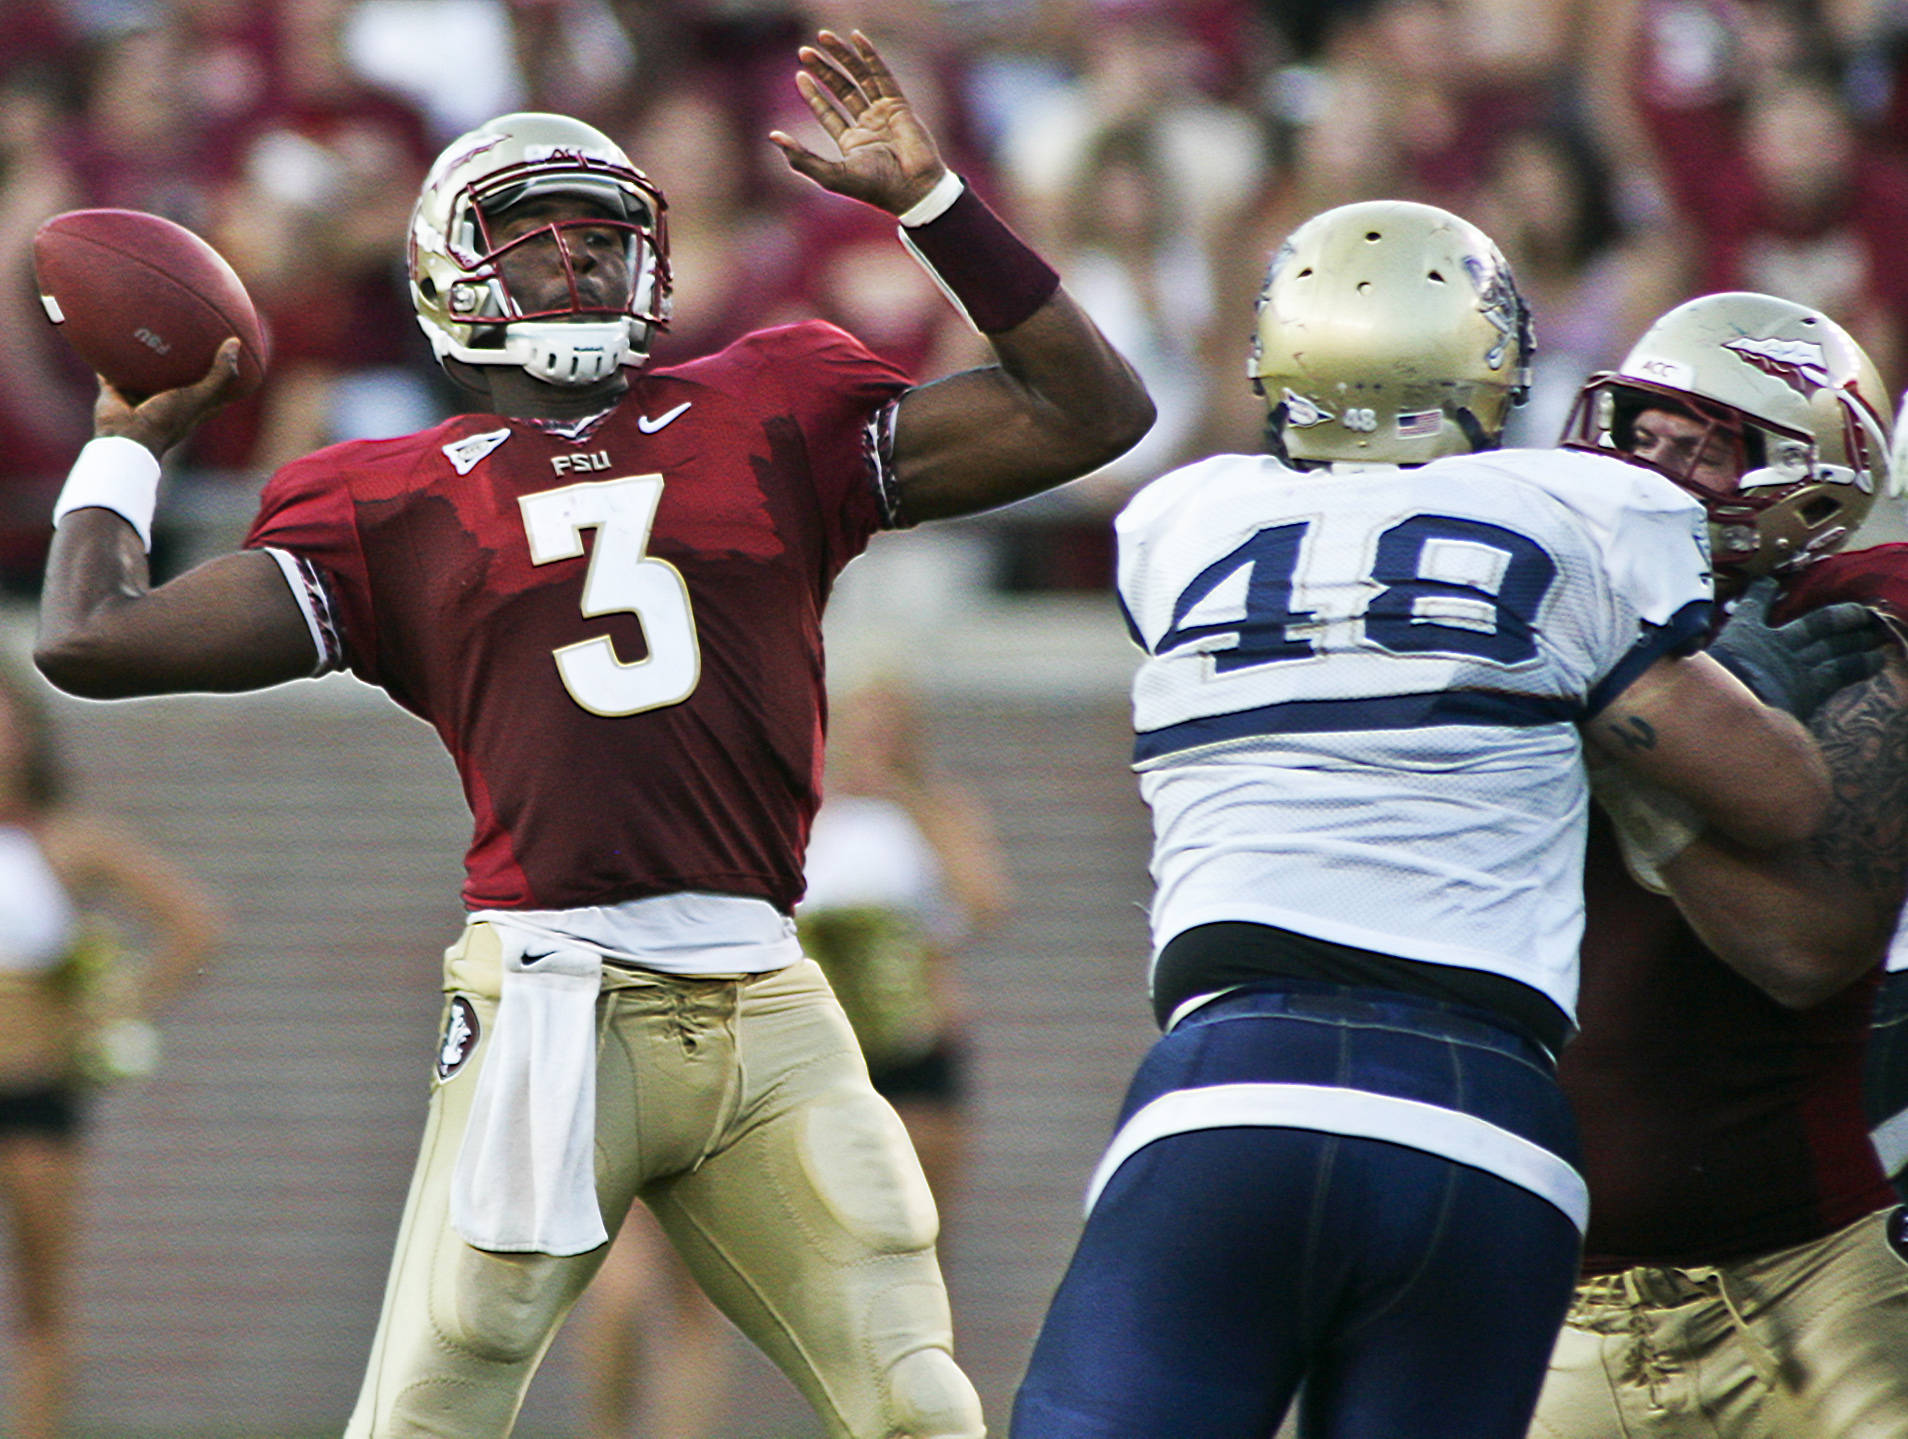 Florida State quarterback E.J. Manuel (3) gets a block as he throws against Charleston Southern in the second quarter of an NCAA college football game on Saturday, Sept. 10, 2011, in Tallahassee, Fla. (AP Photo/Phil Sears)